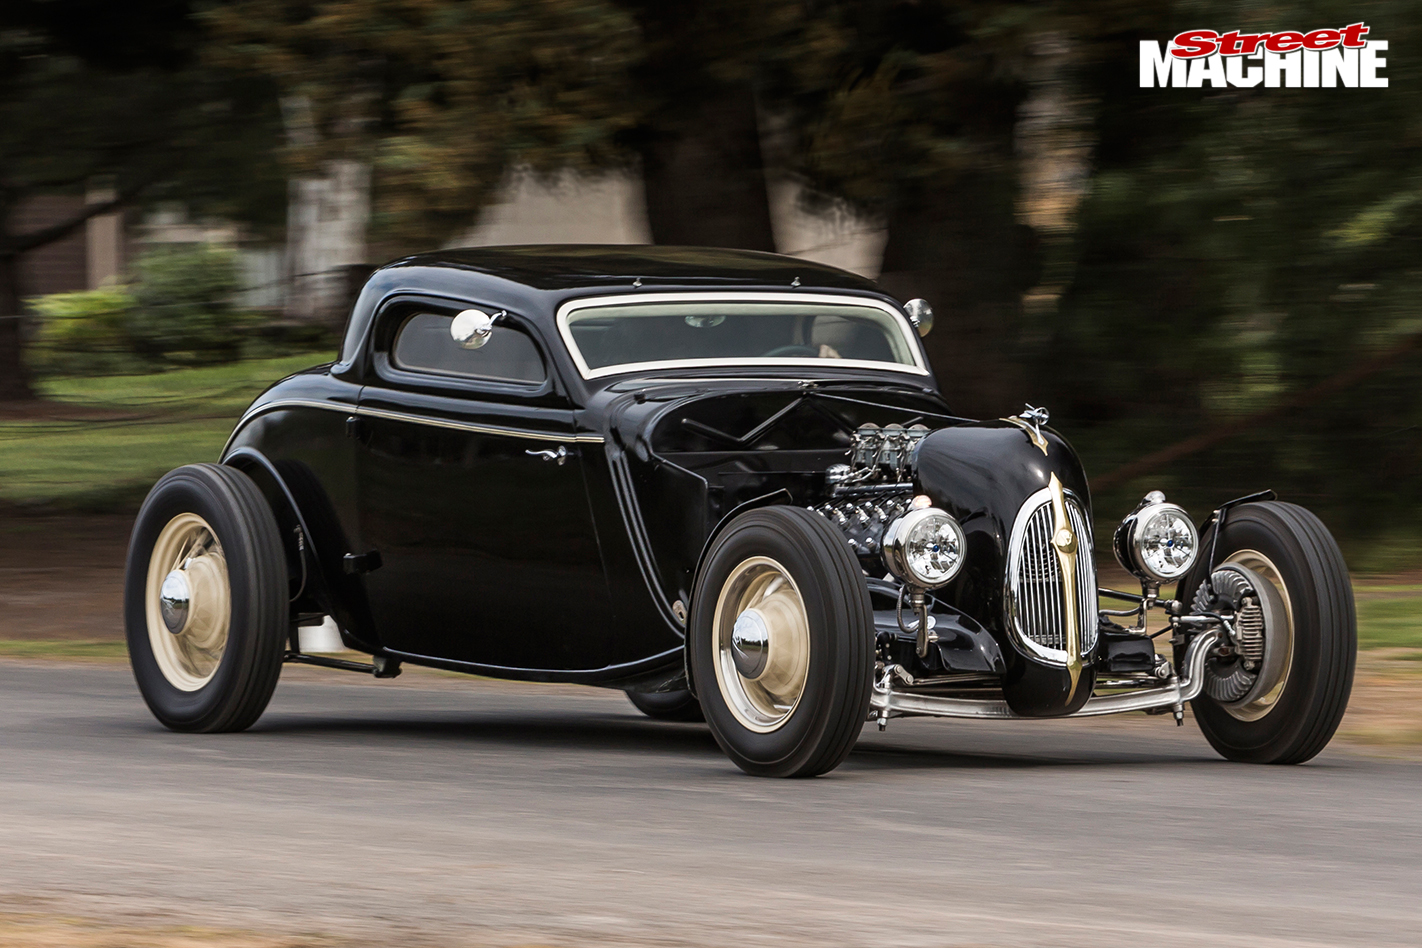 Norm -coupe -onroad -2